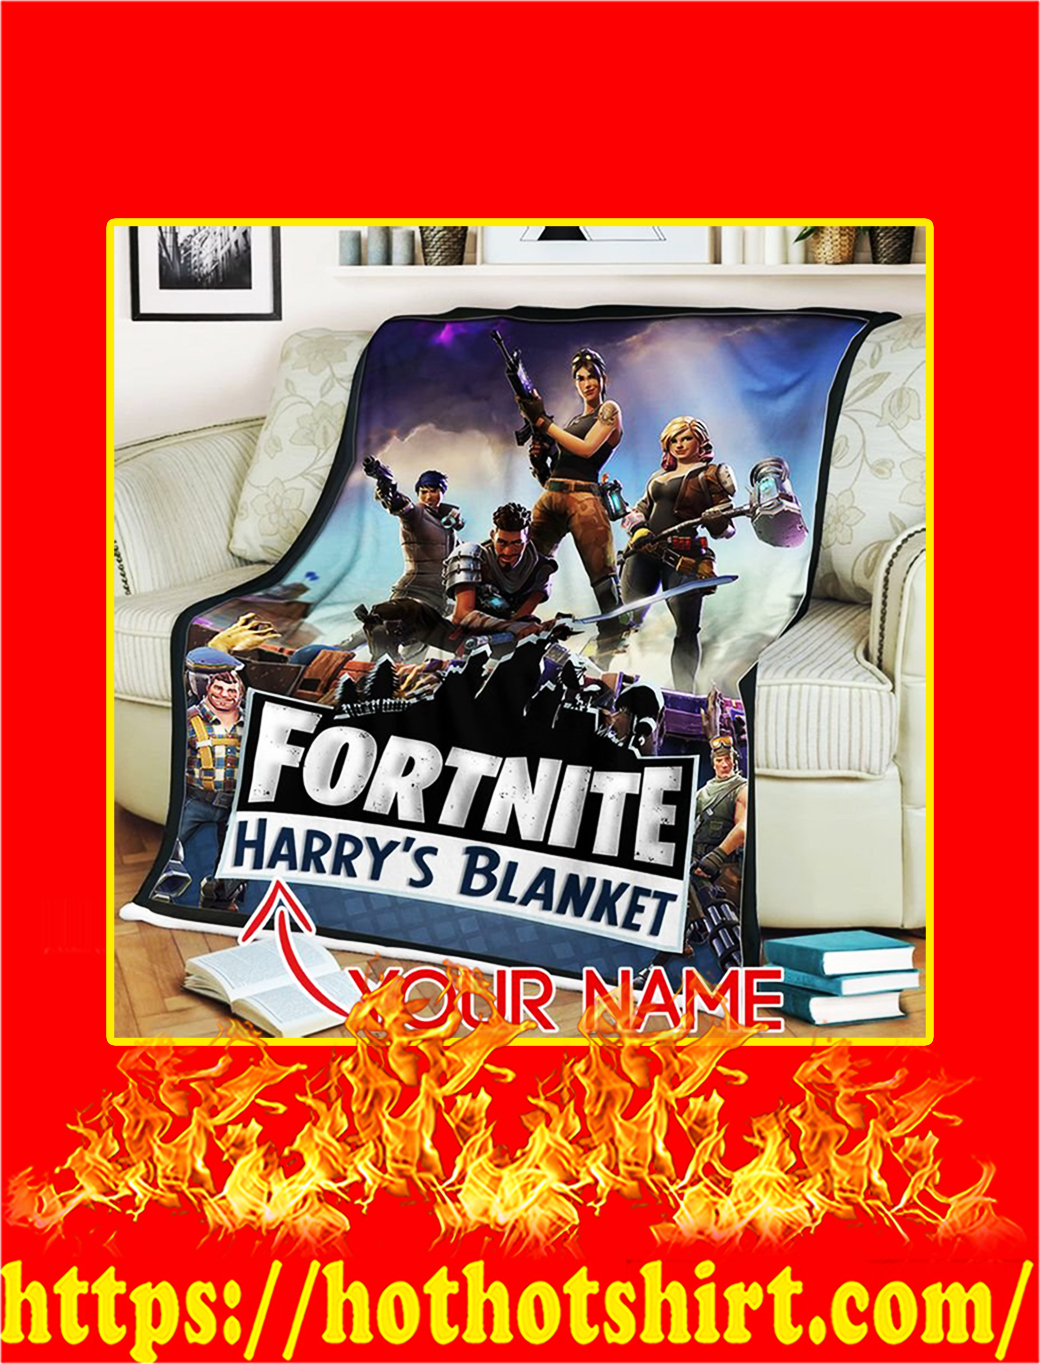 Fortnite Gaming Custom Name Personalize Blanket - large